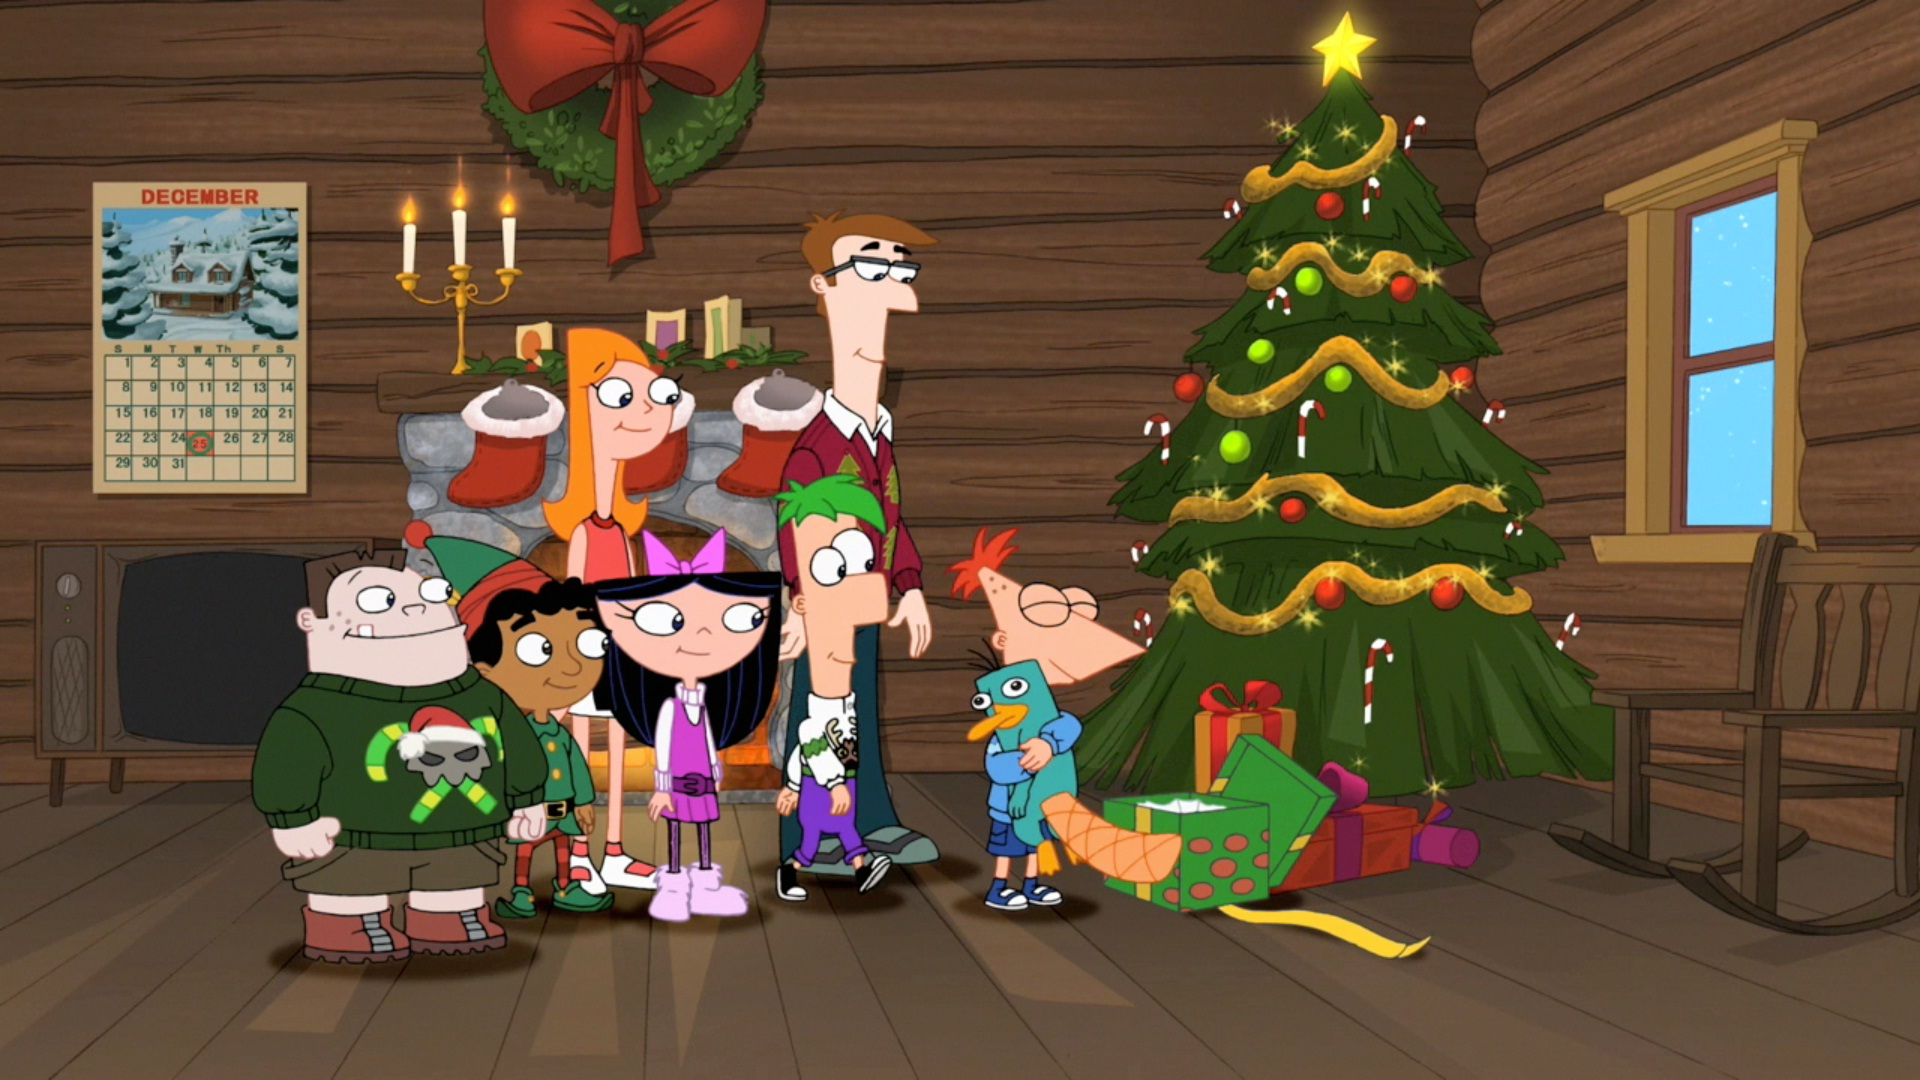 A Phineas and Ferb Family Christmas | Phineas and Ferb Wiki ...